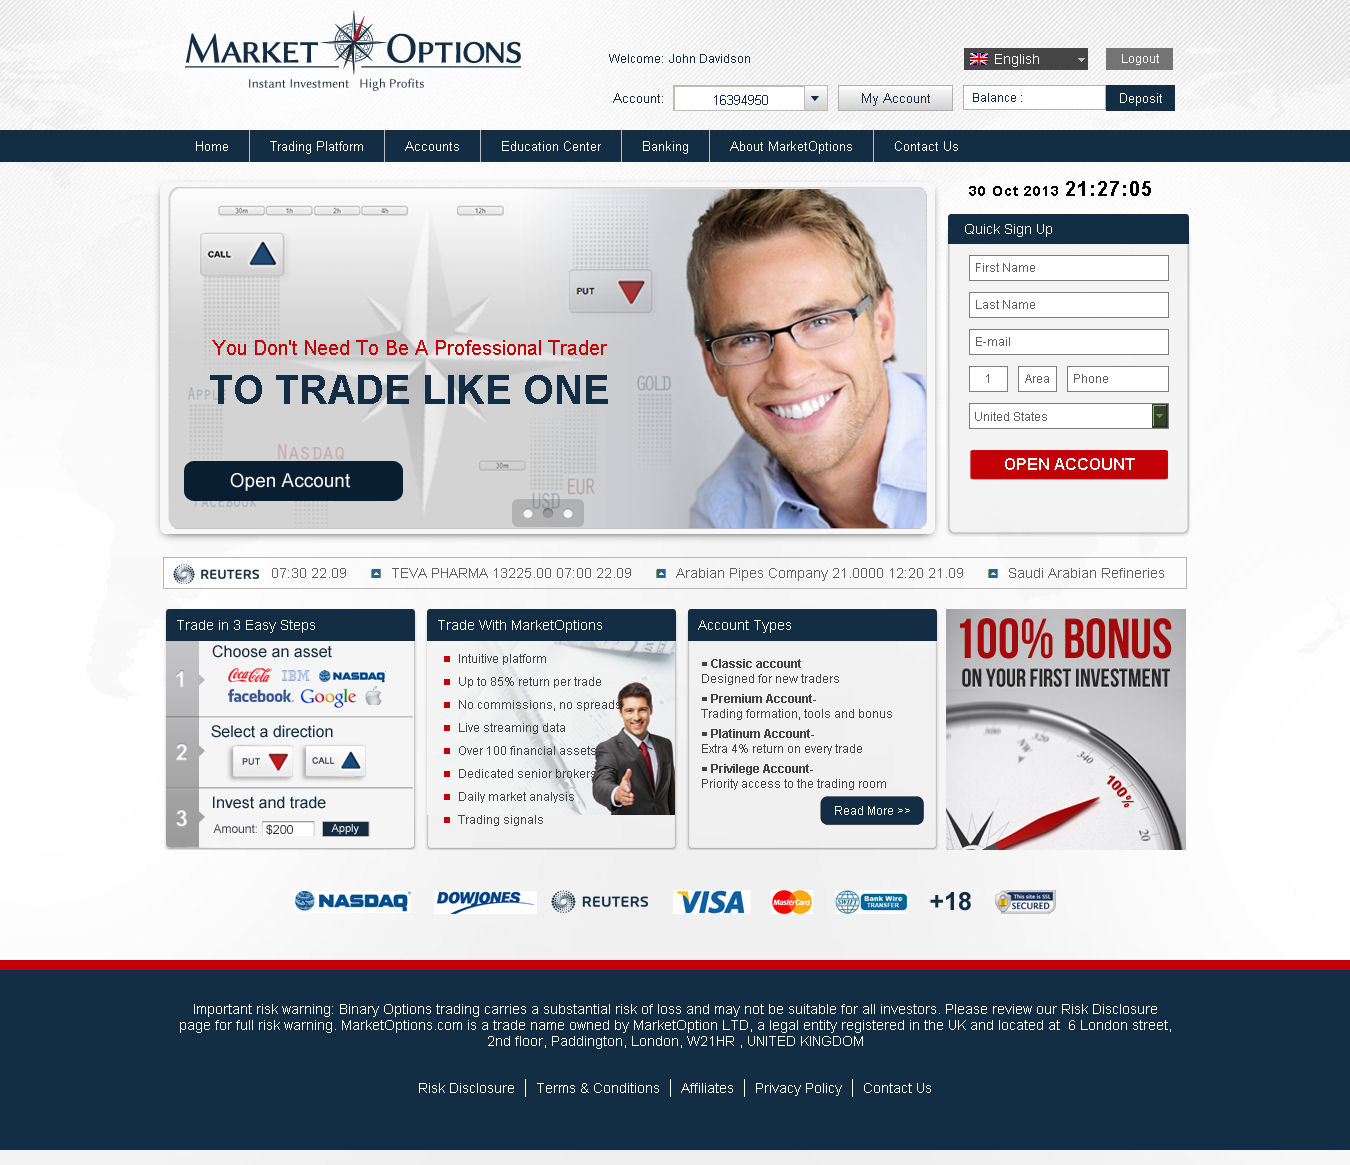 Global option trading reviews